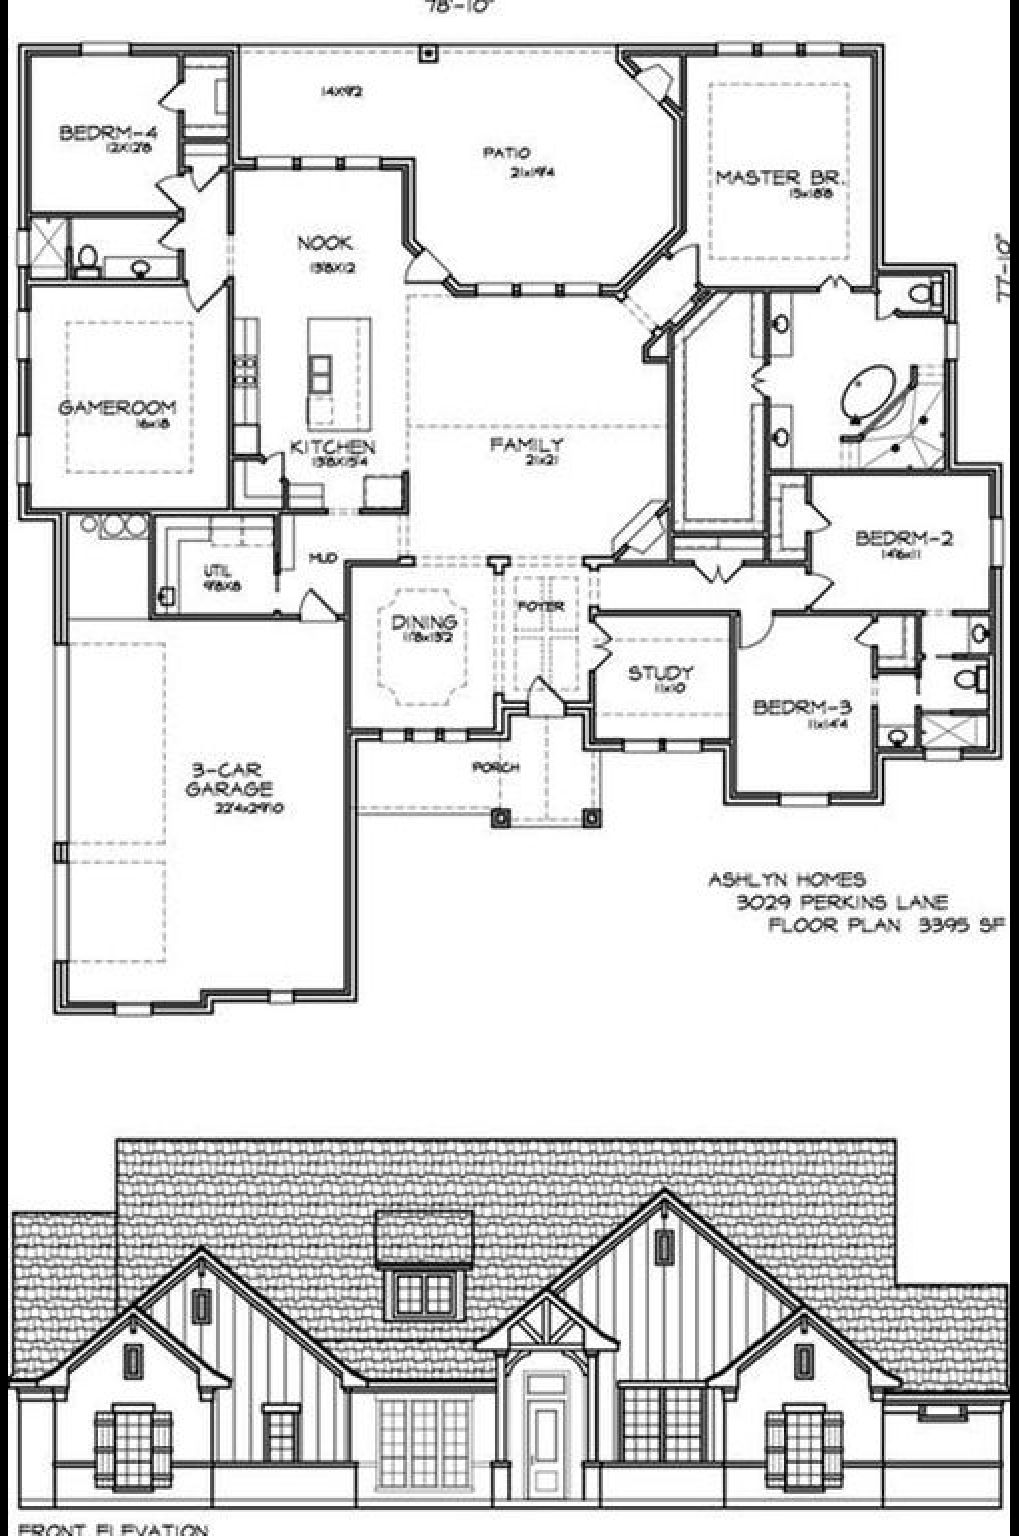 Combine Bedroom 4 Gameroom To Make A Mother In Law Suite In Law Suite House Plans Game Room